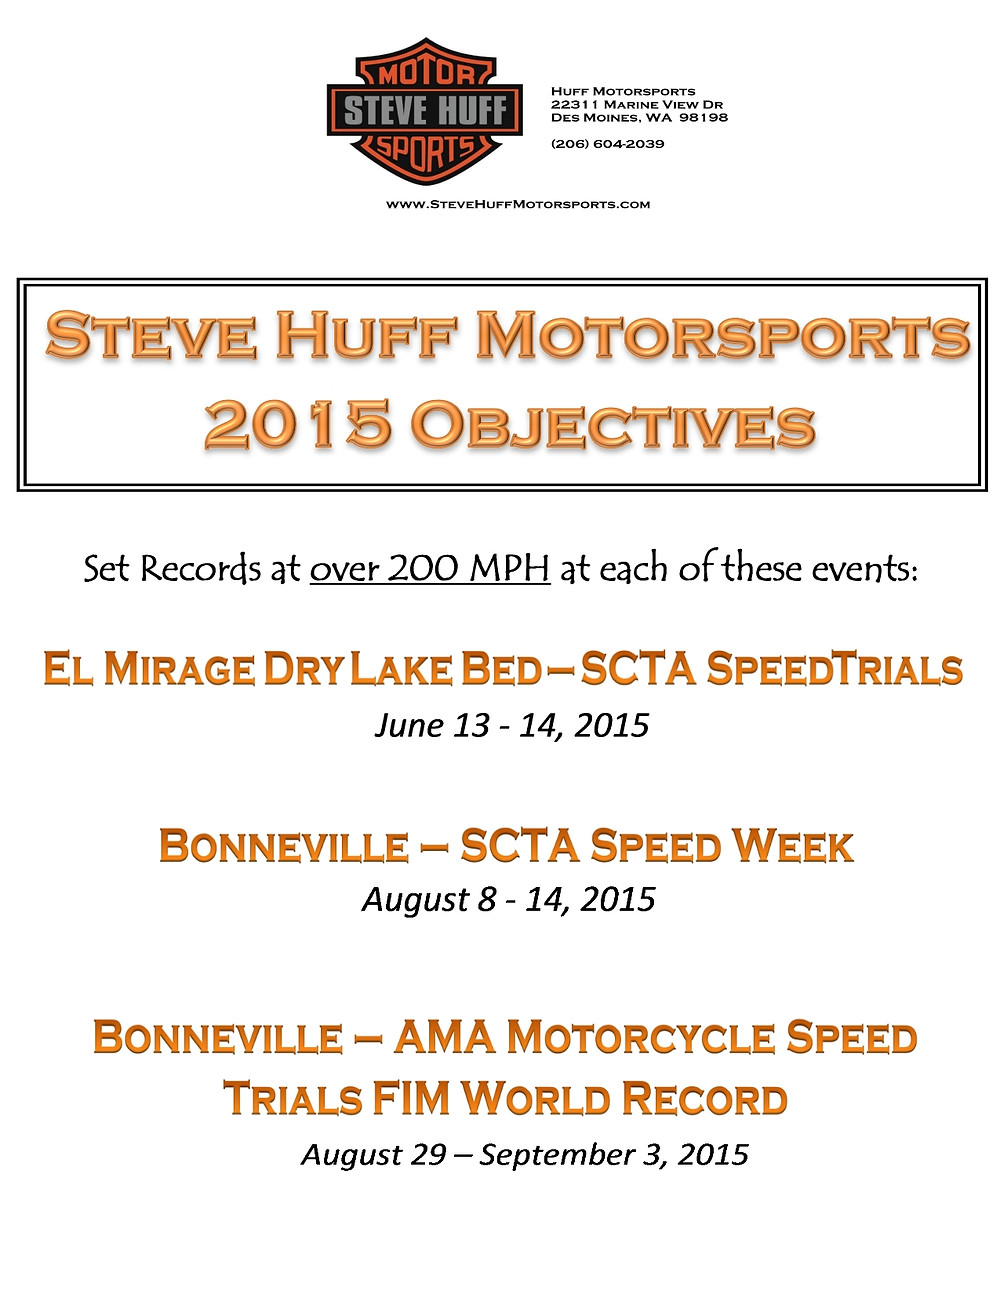 Steve Huff Motorsports landspeed racing objectives goals race records bonneville el mirage